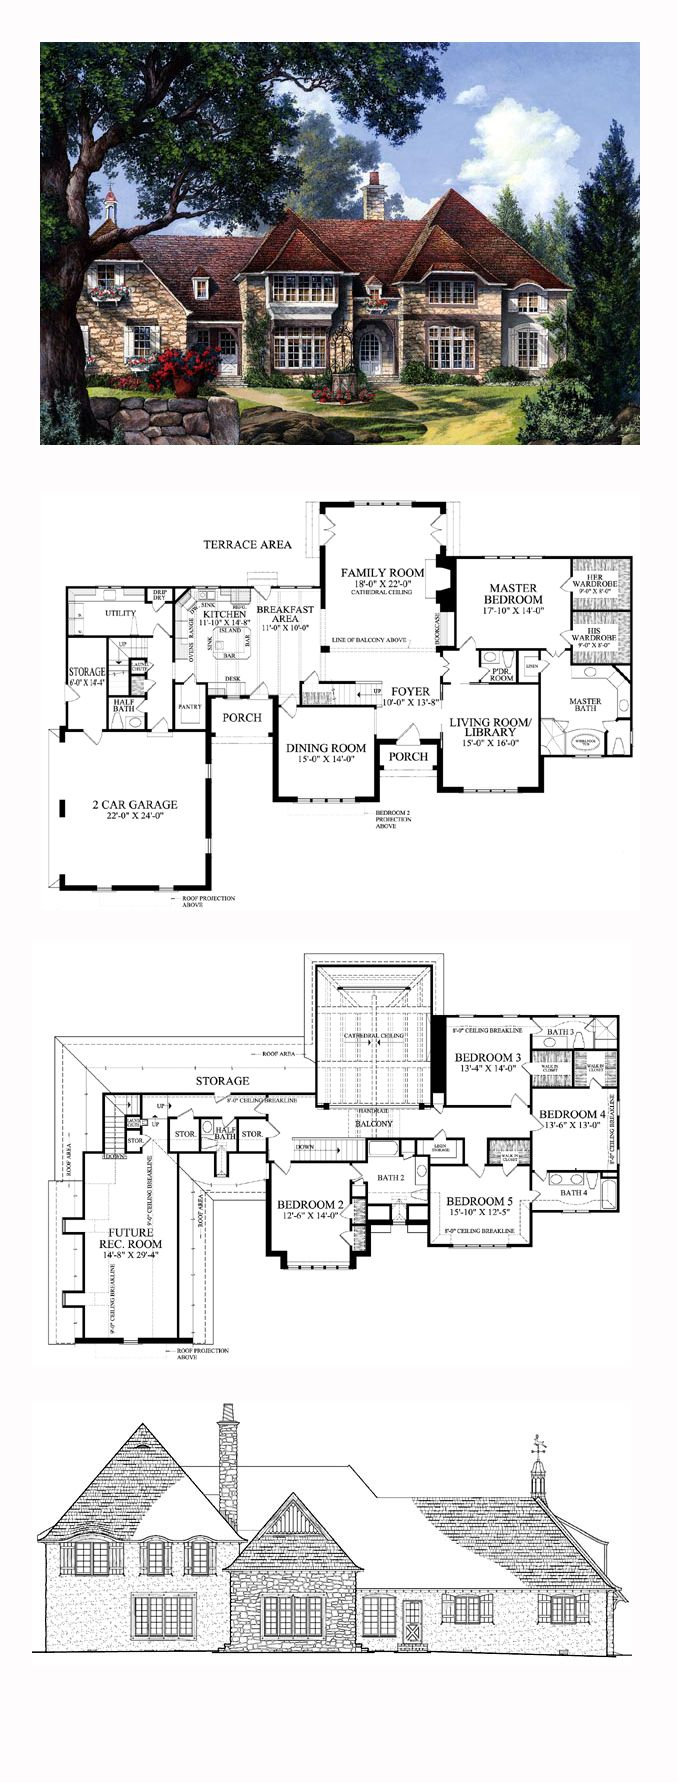 Plantation House Plan 86260 | Total Living Area: 4258 sq. ft., 5 bedrooms, 4 full bathrooms and 3 half baths. #plantationhome